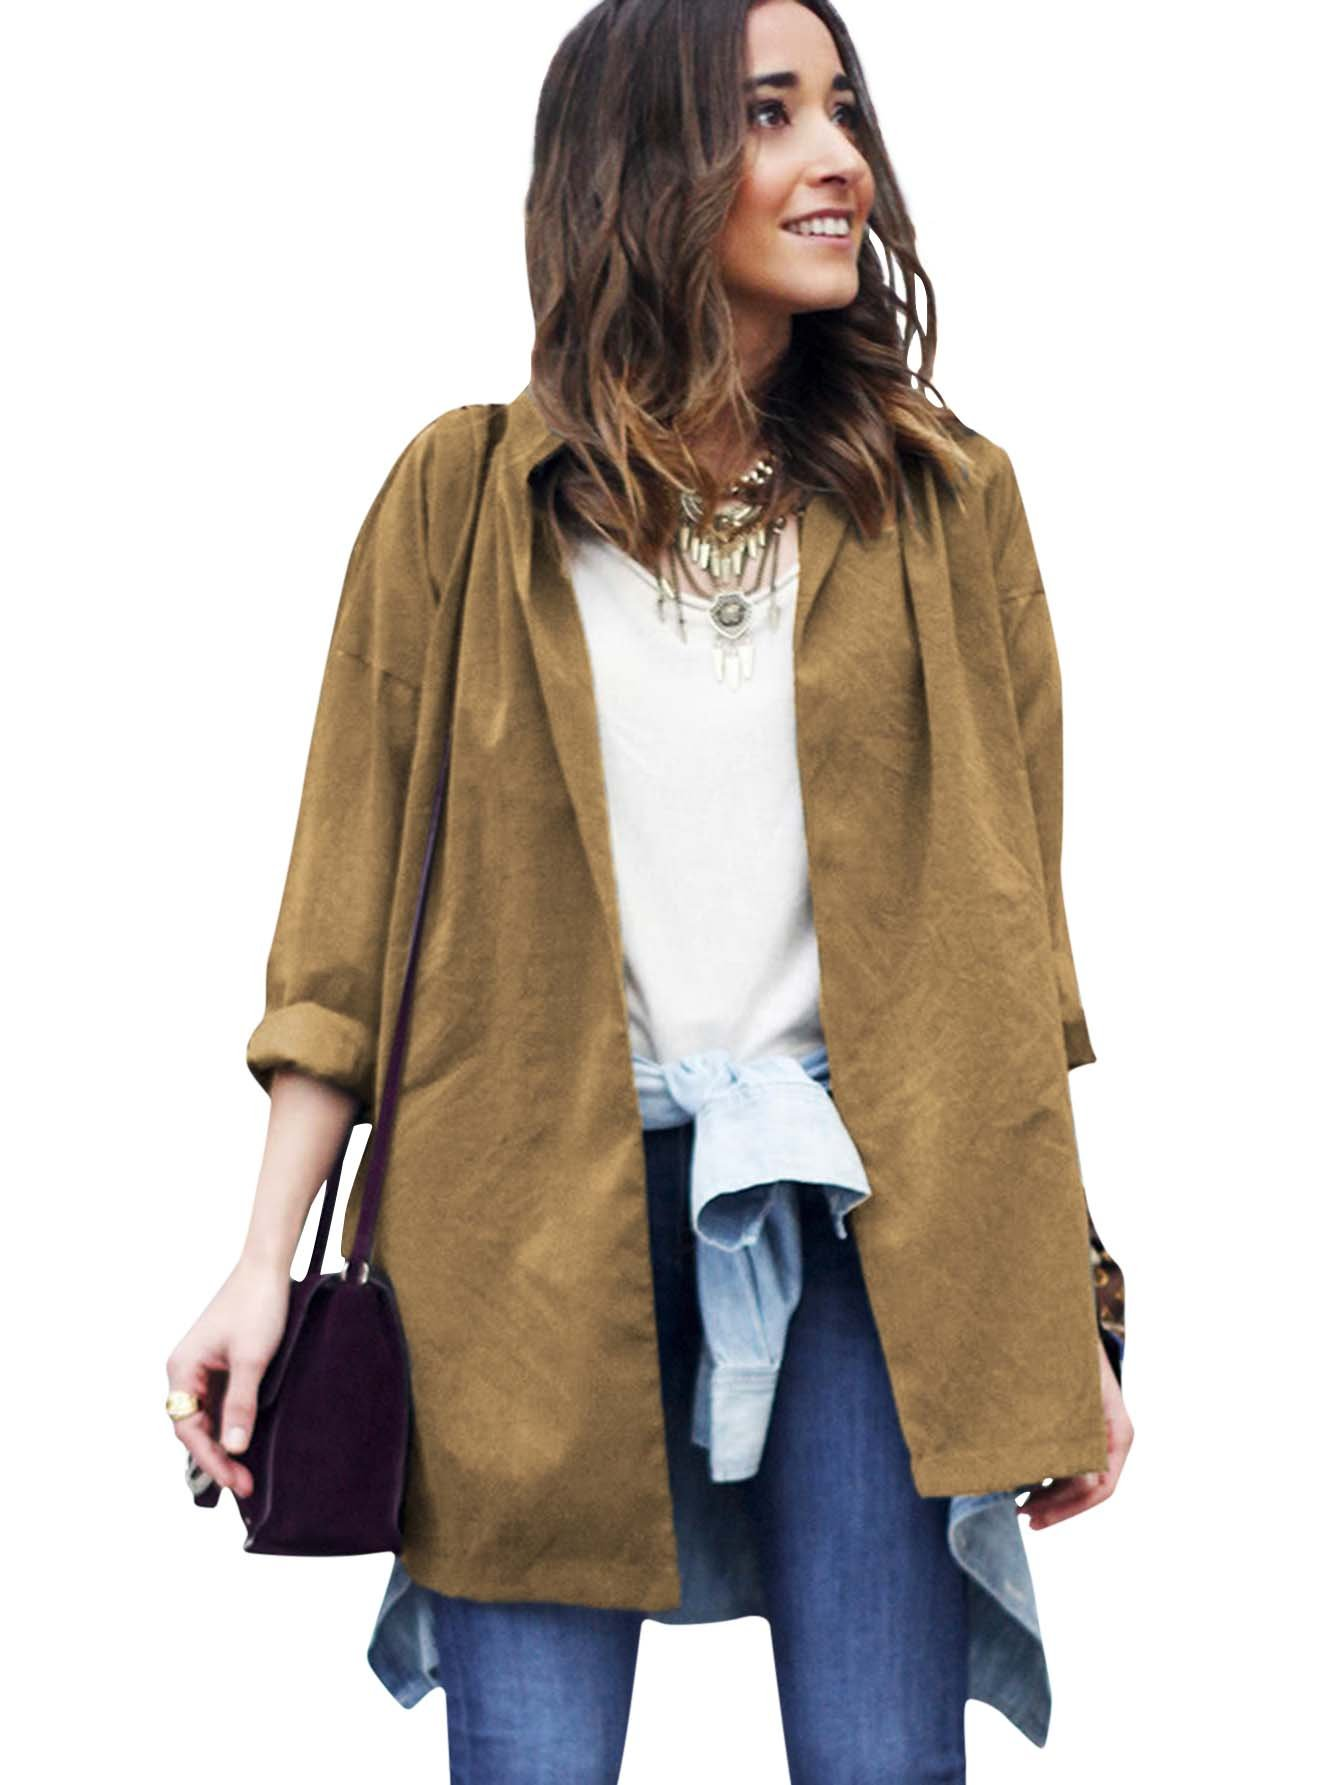 Romwe Women's Workout Slit Side Oversized Coat Lightweight Long Sleeve Collar Wrap Jacket Brown M